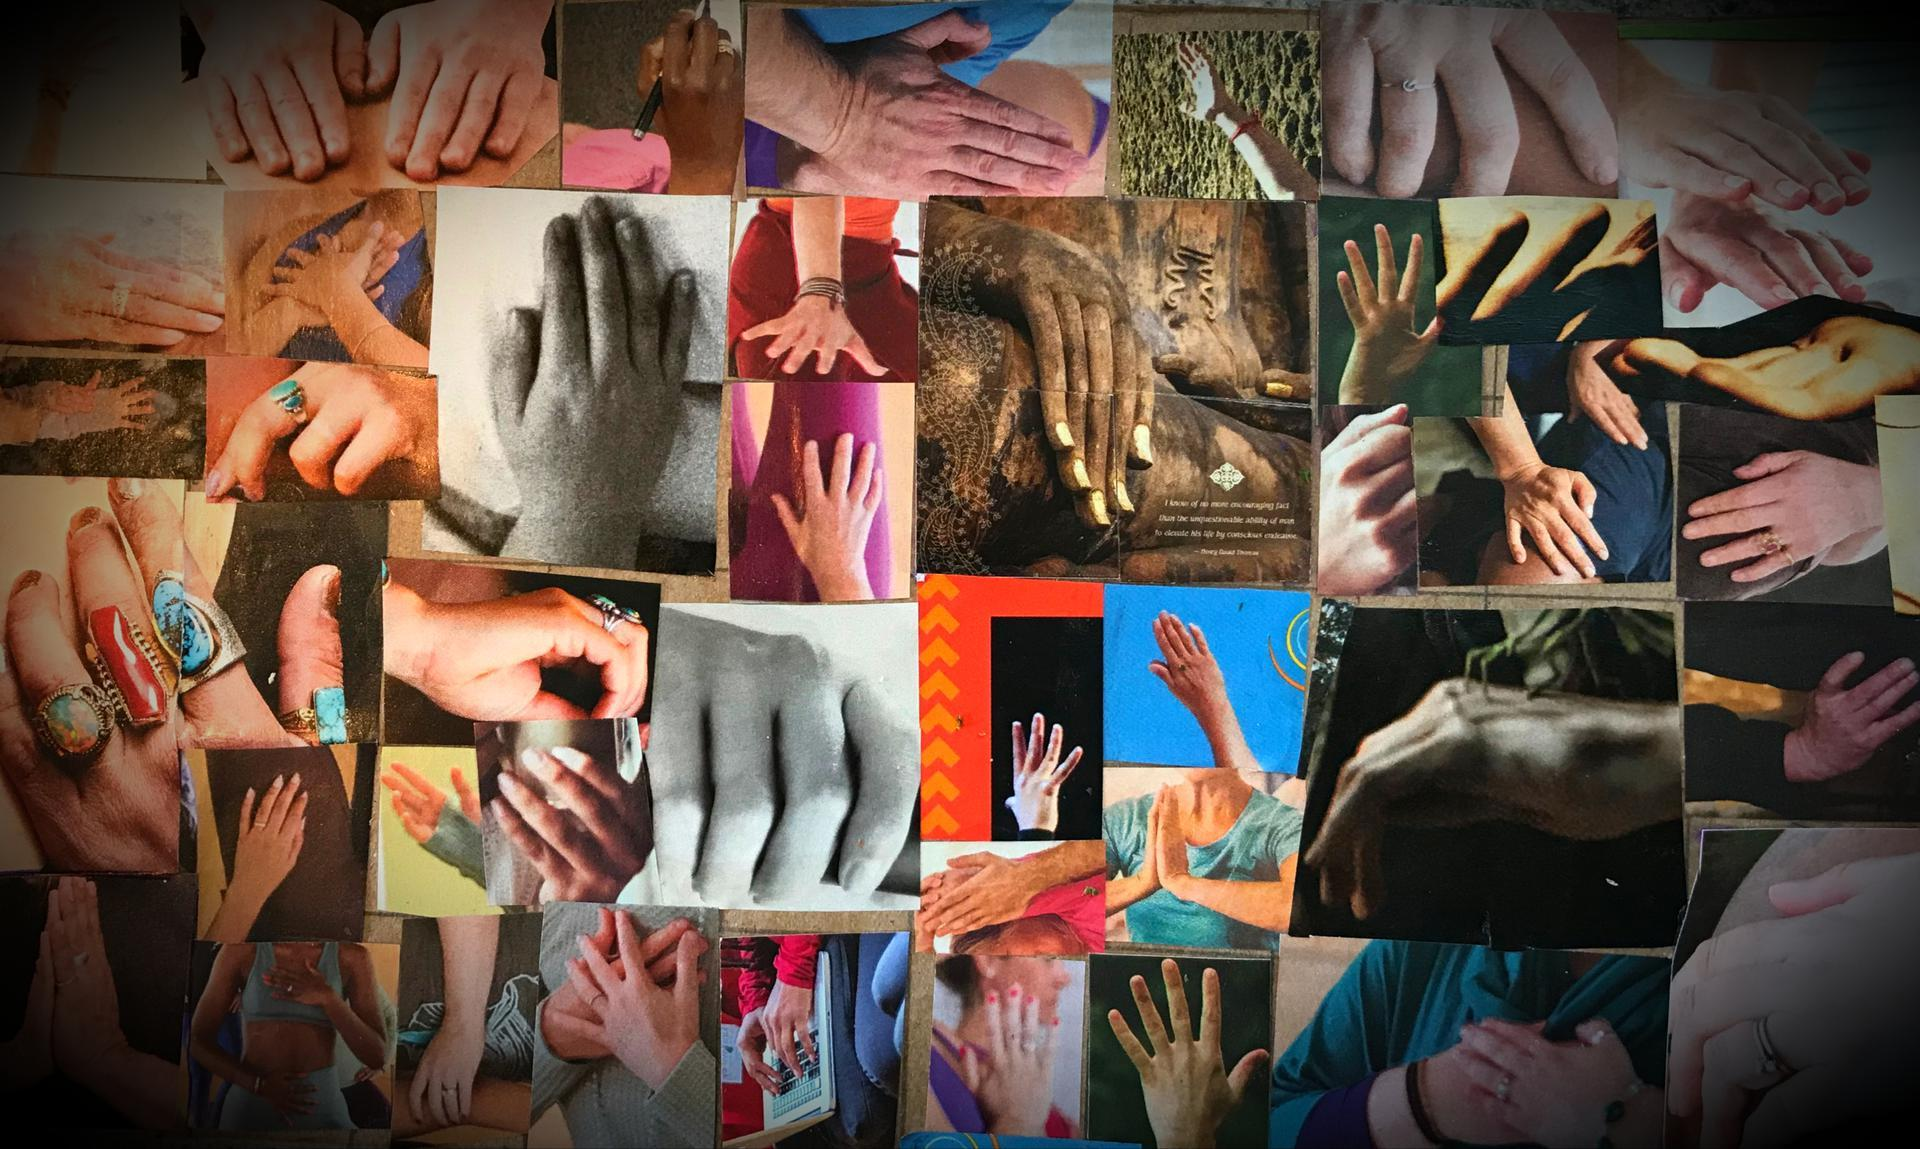 hands of hope image